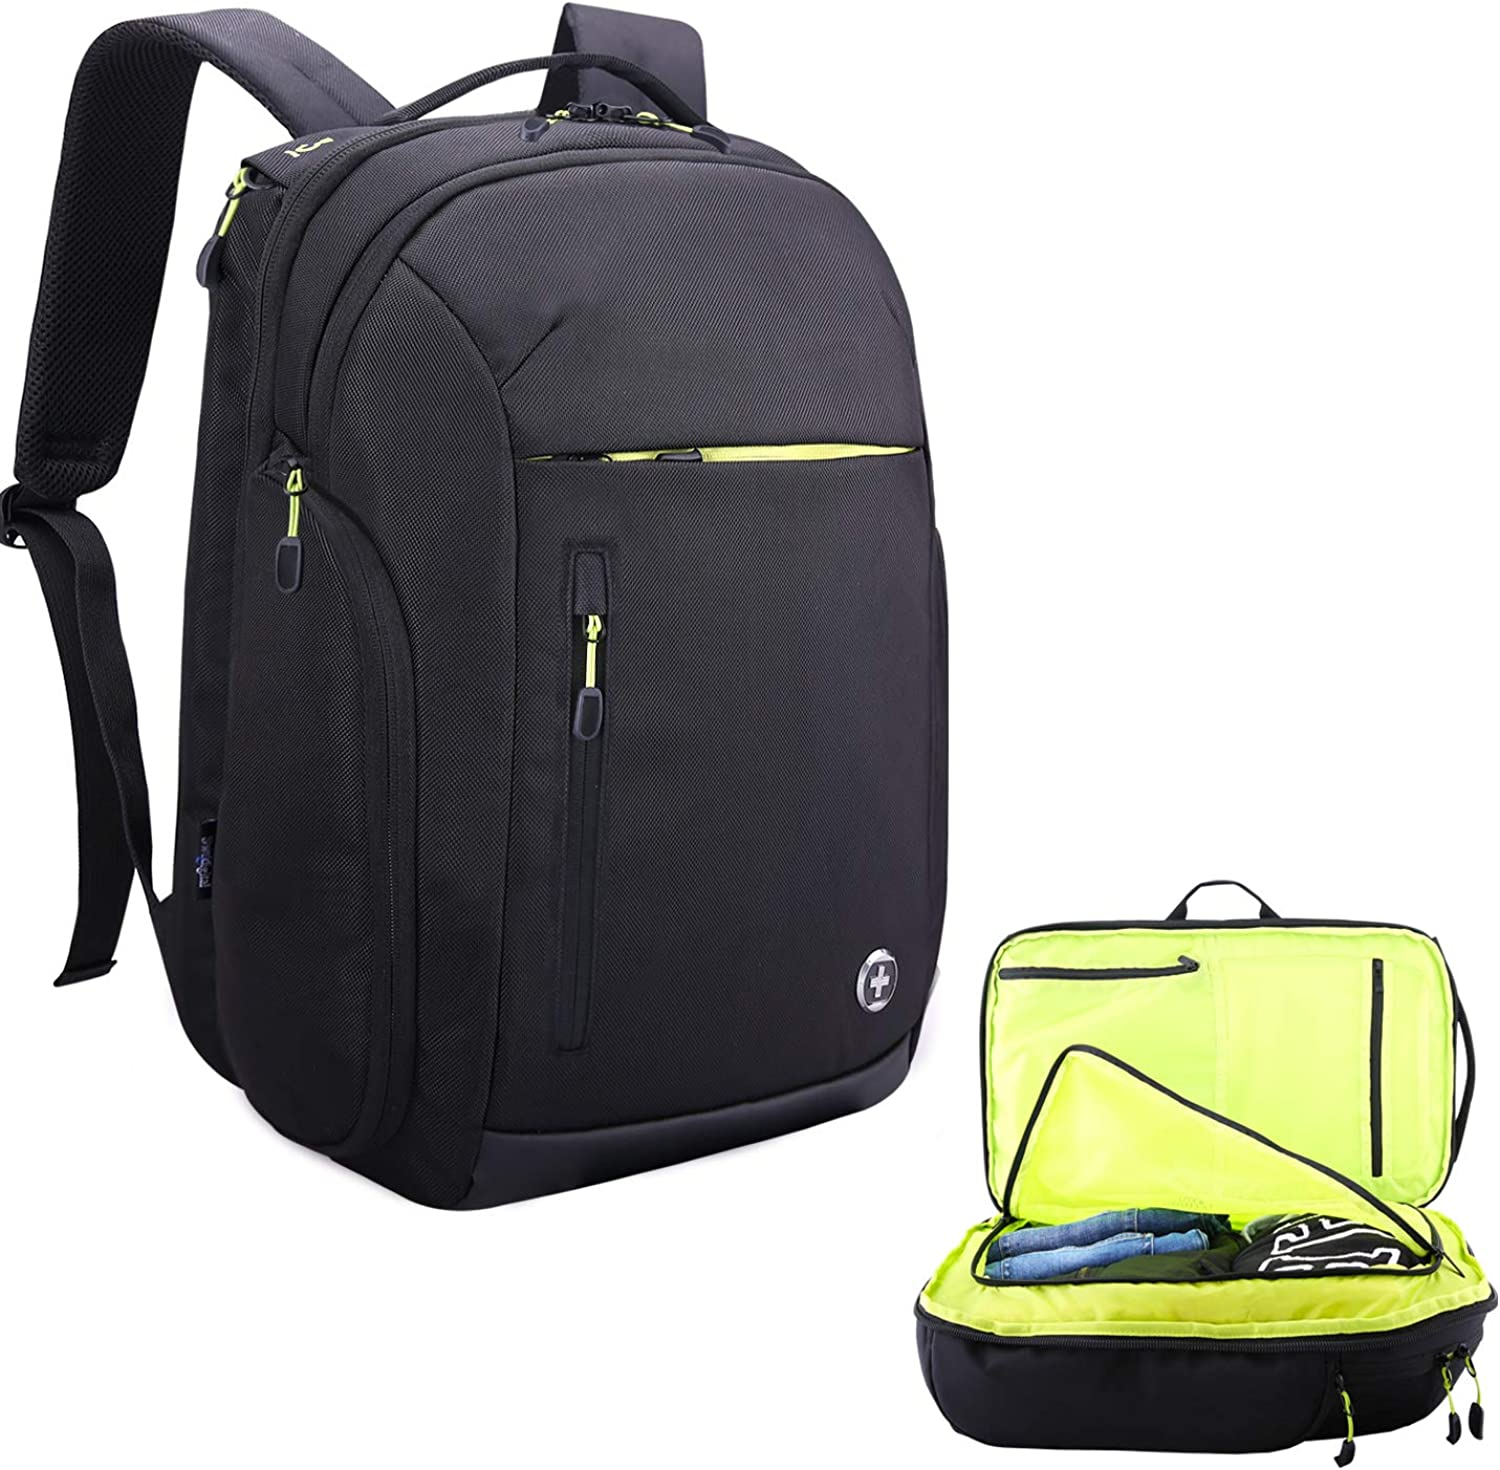 Large Travel 17in Laptop waterproof USB RFID Flight Approved Carry-On Backpack